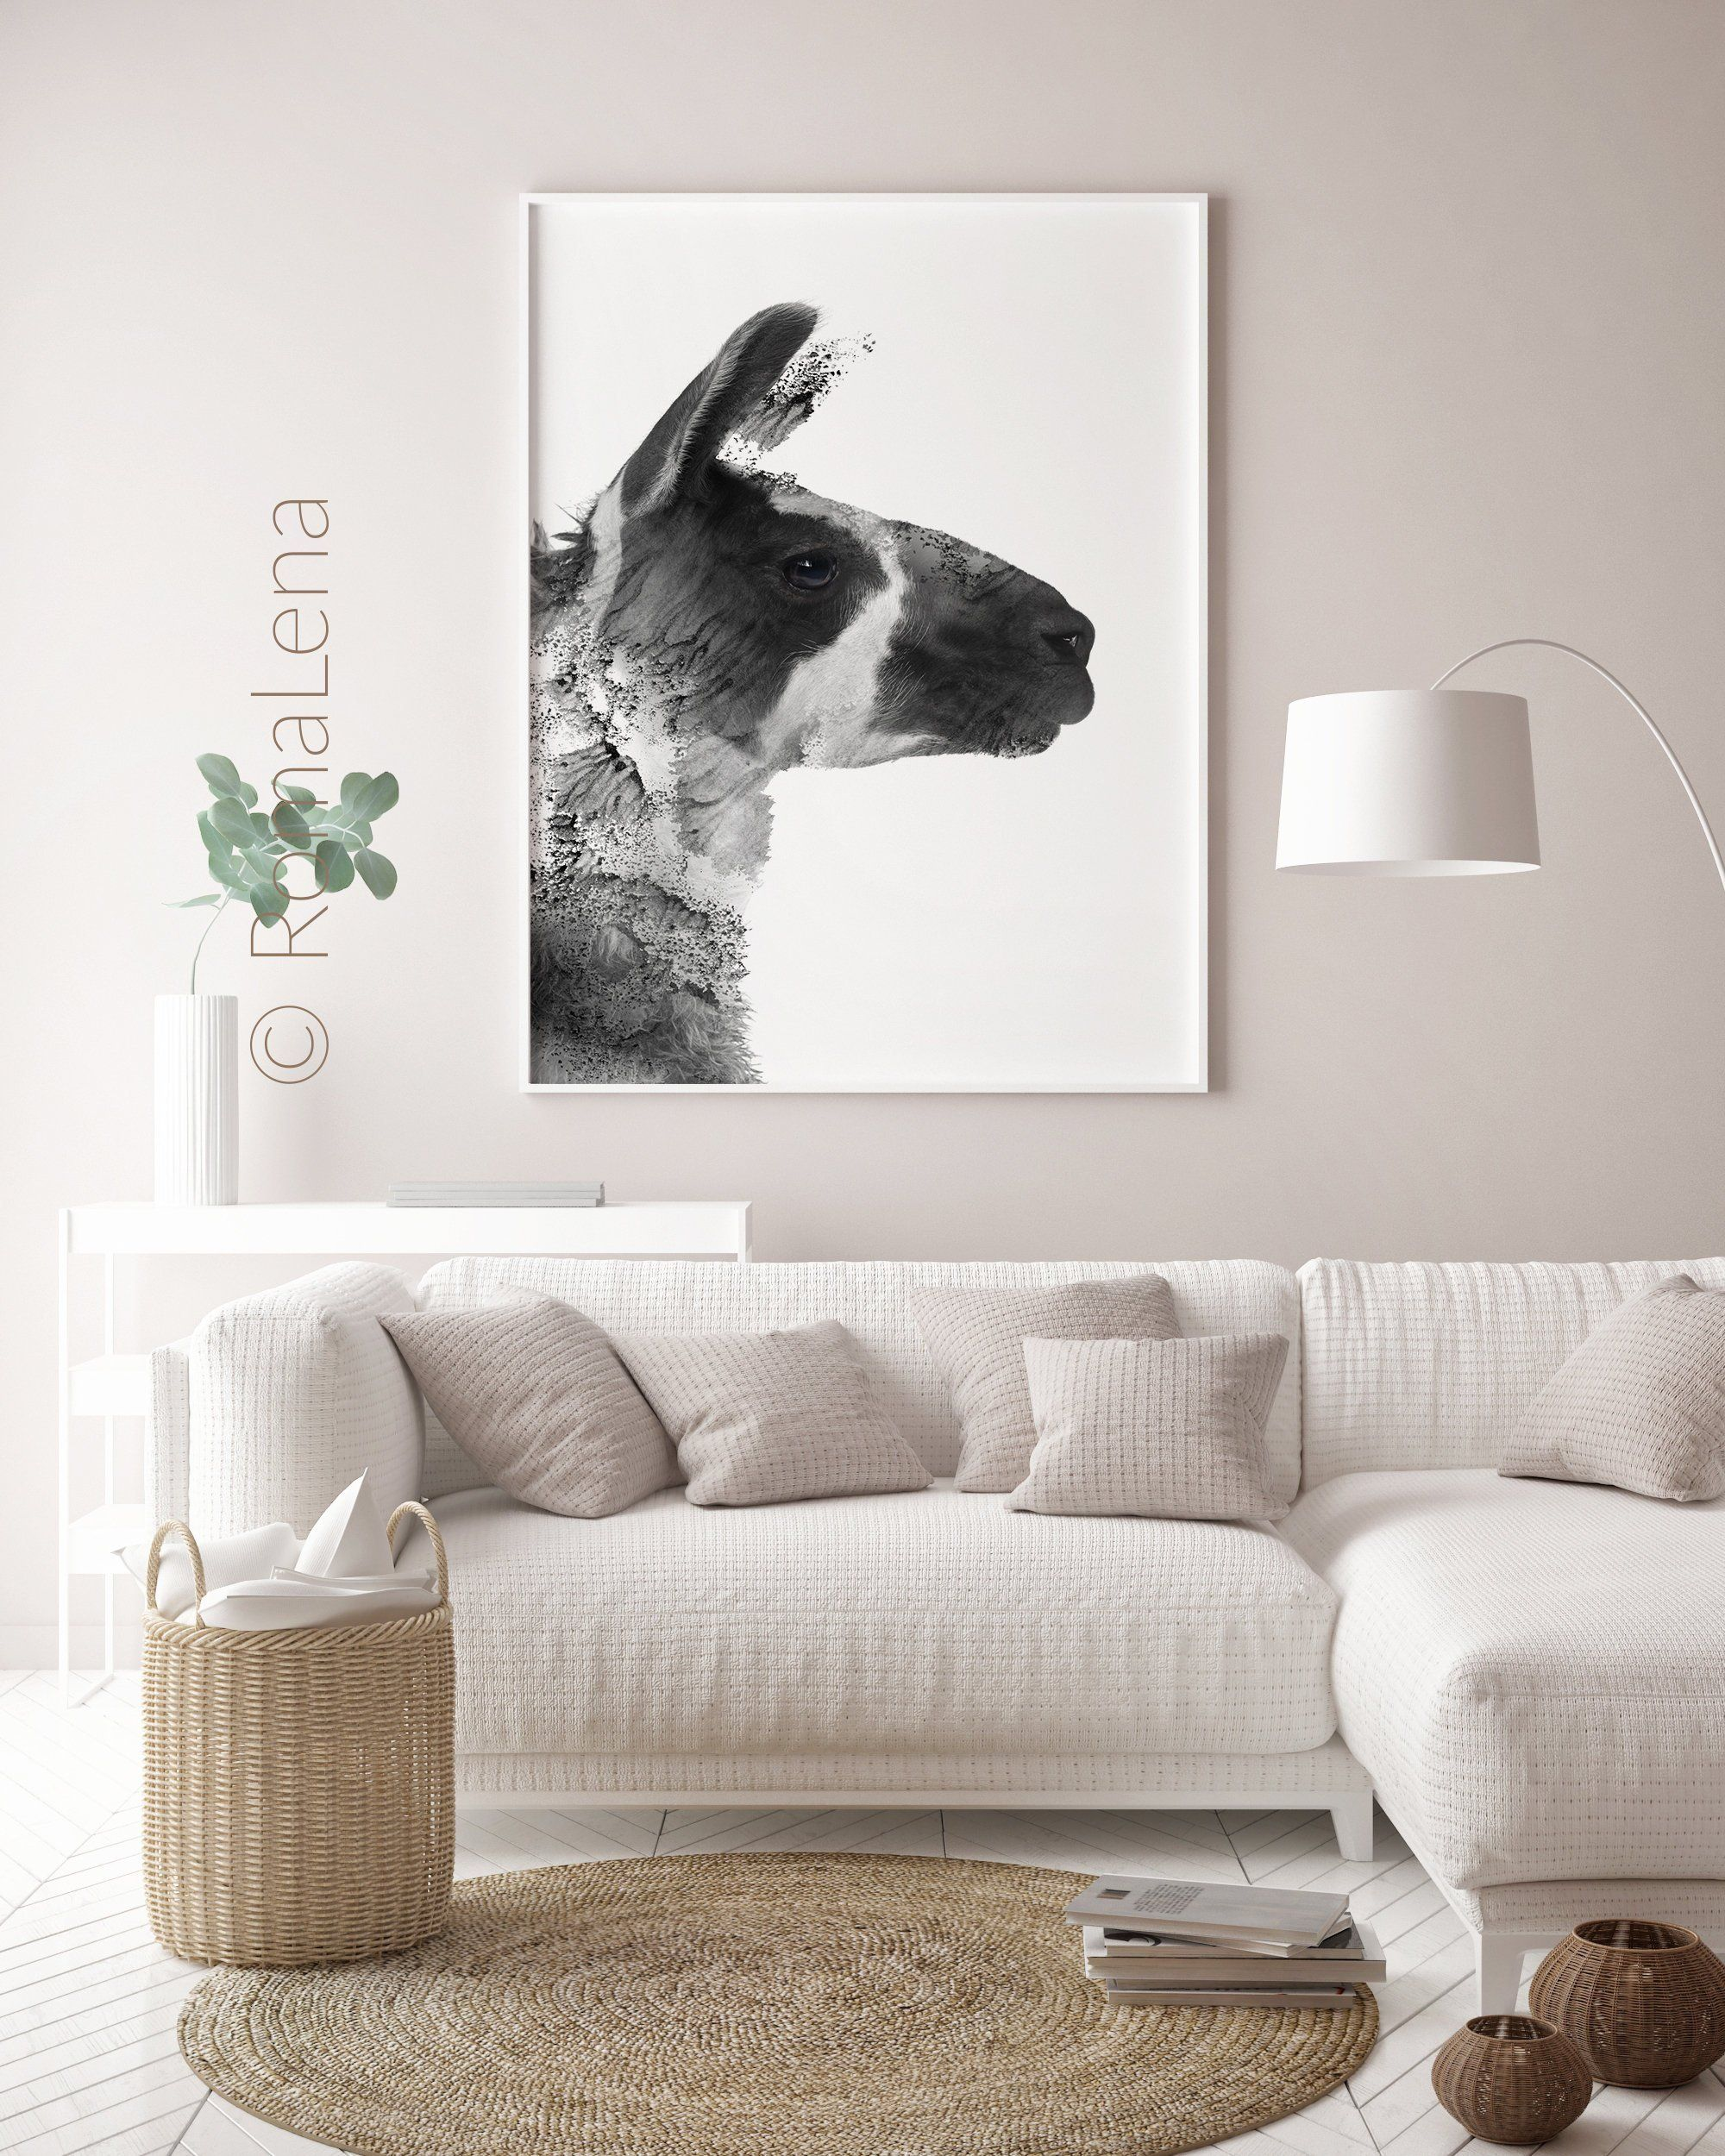 Lama Art Wall Art Print Animal Prints Black And White Wall Decor Alpaca Peekaboo Art Pos Wall Art Decor Living Room White Wall Decor Wall Art Living Room #white #wall #decor #for #living #room